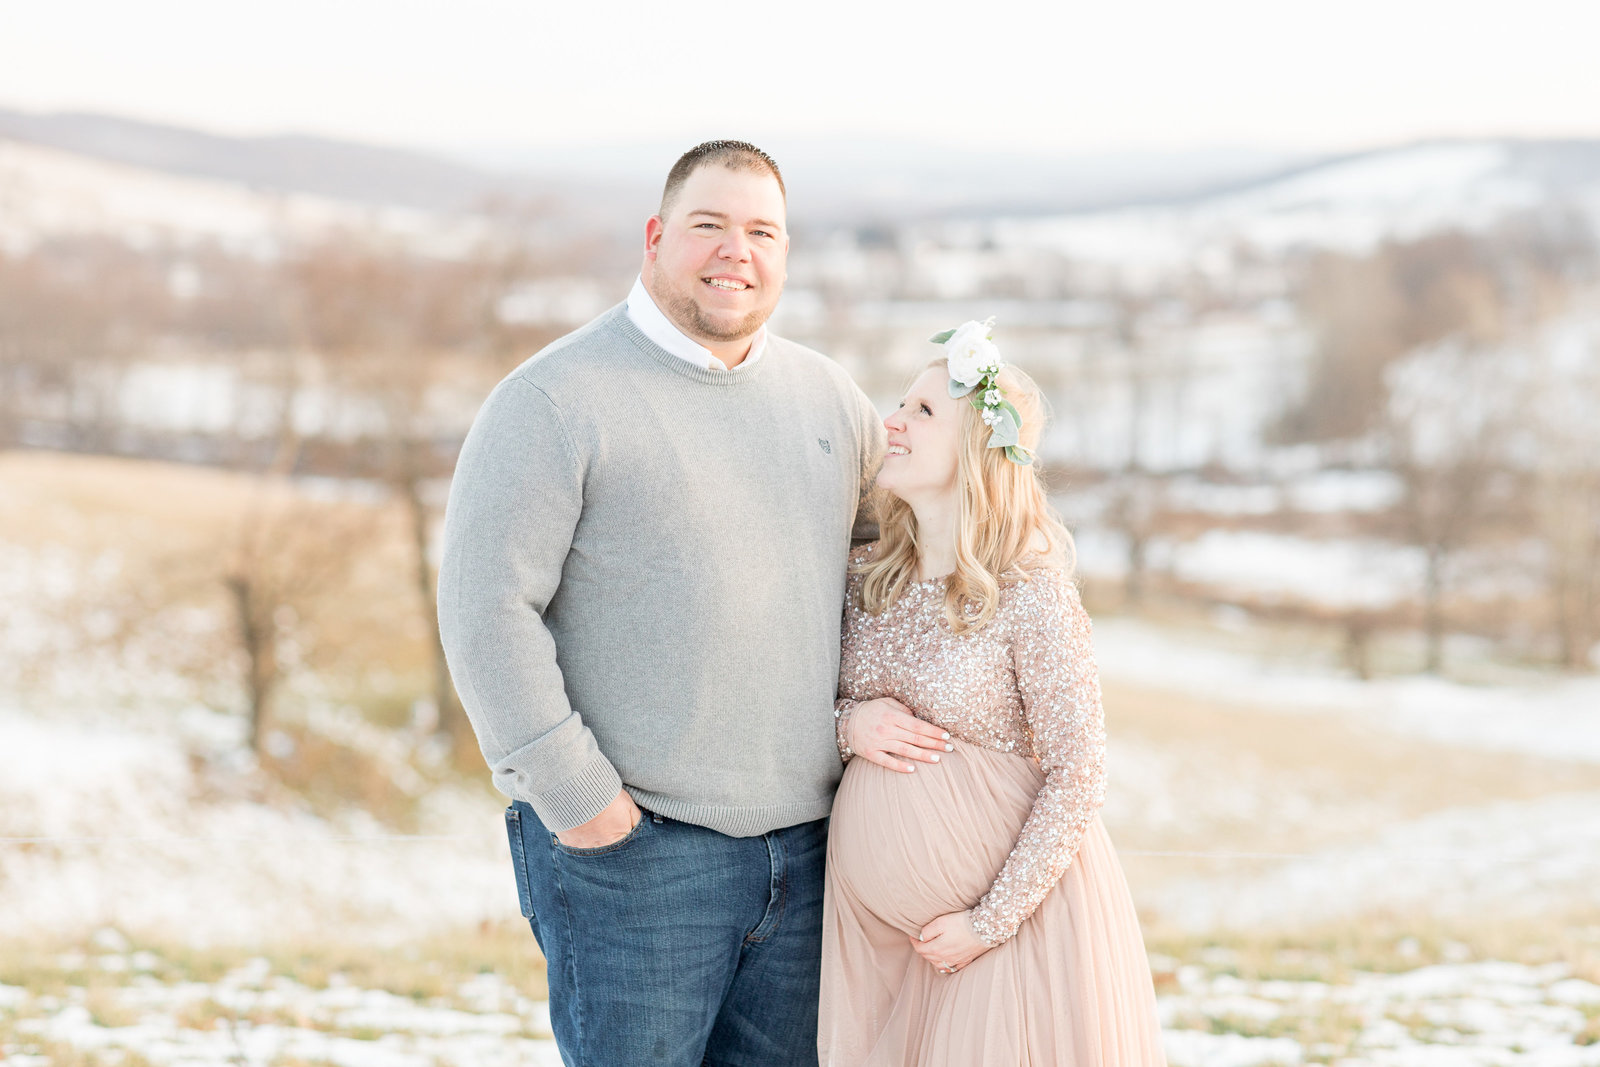 jess-dereck-snowy-winter-maternity-photo-session-012